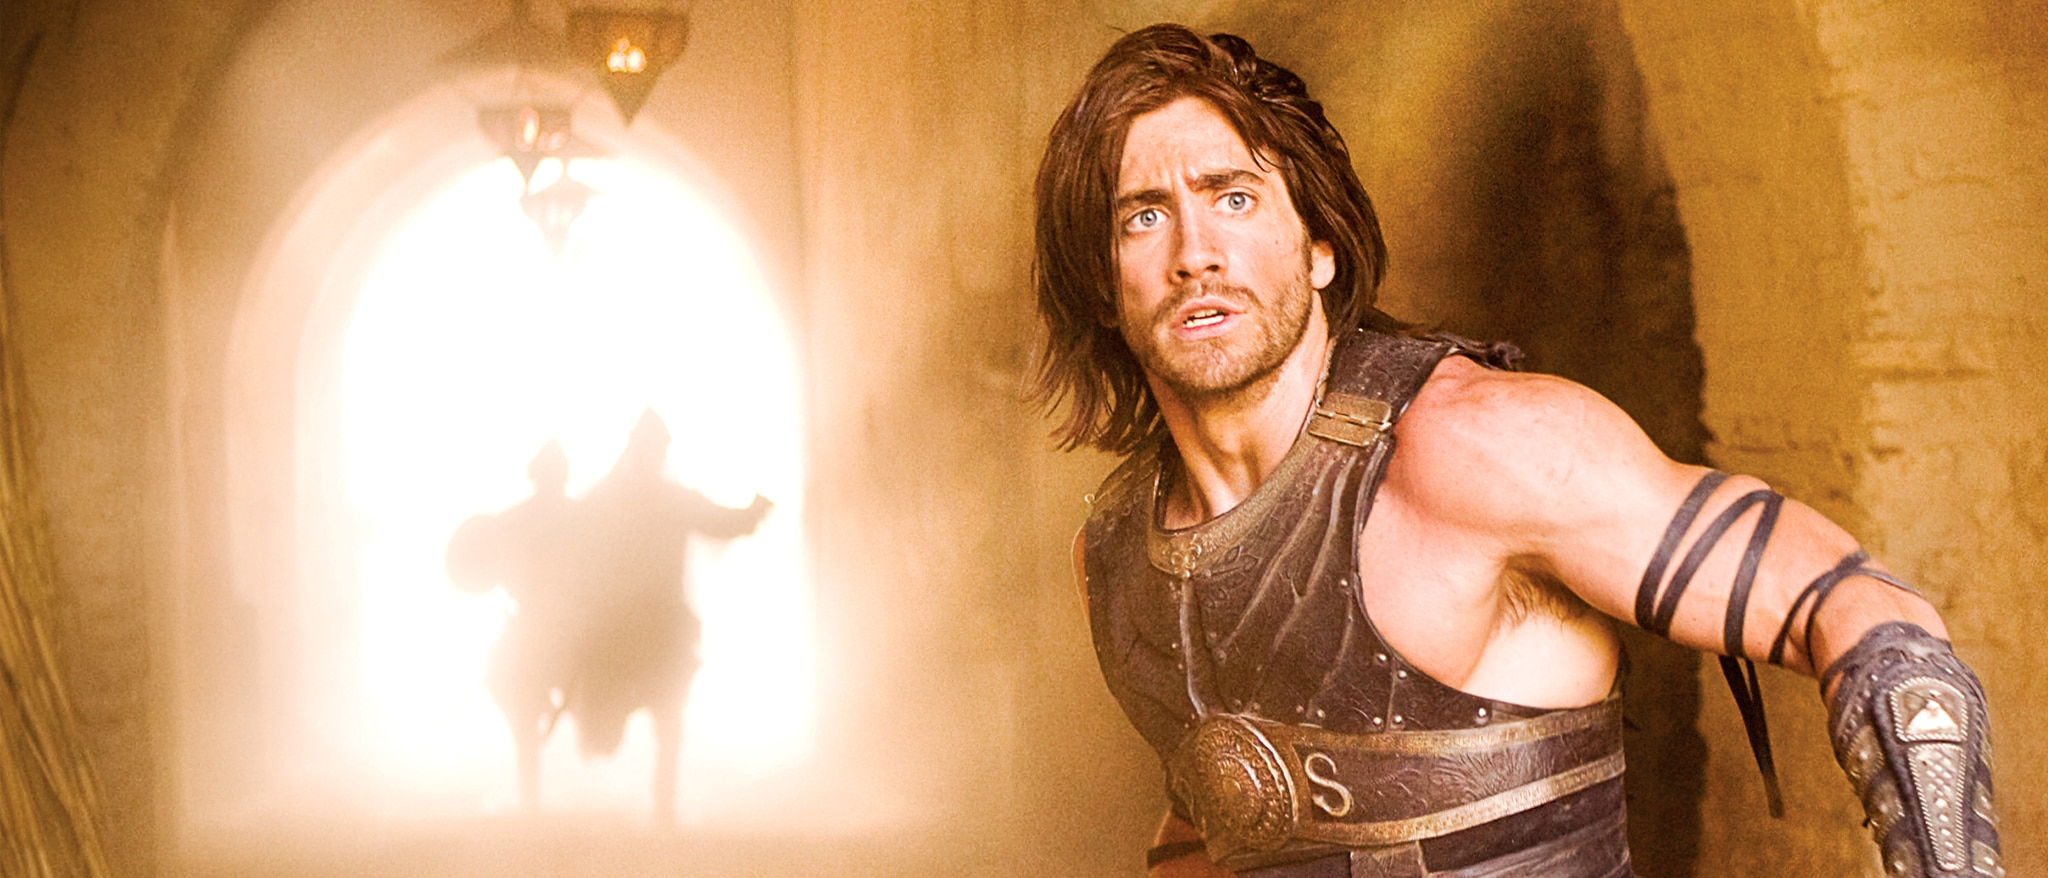 Prince of Persia: The Sands of Time Hero